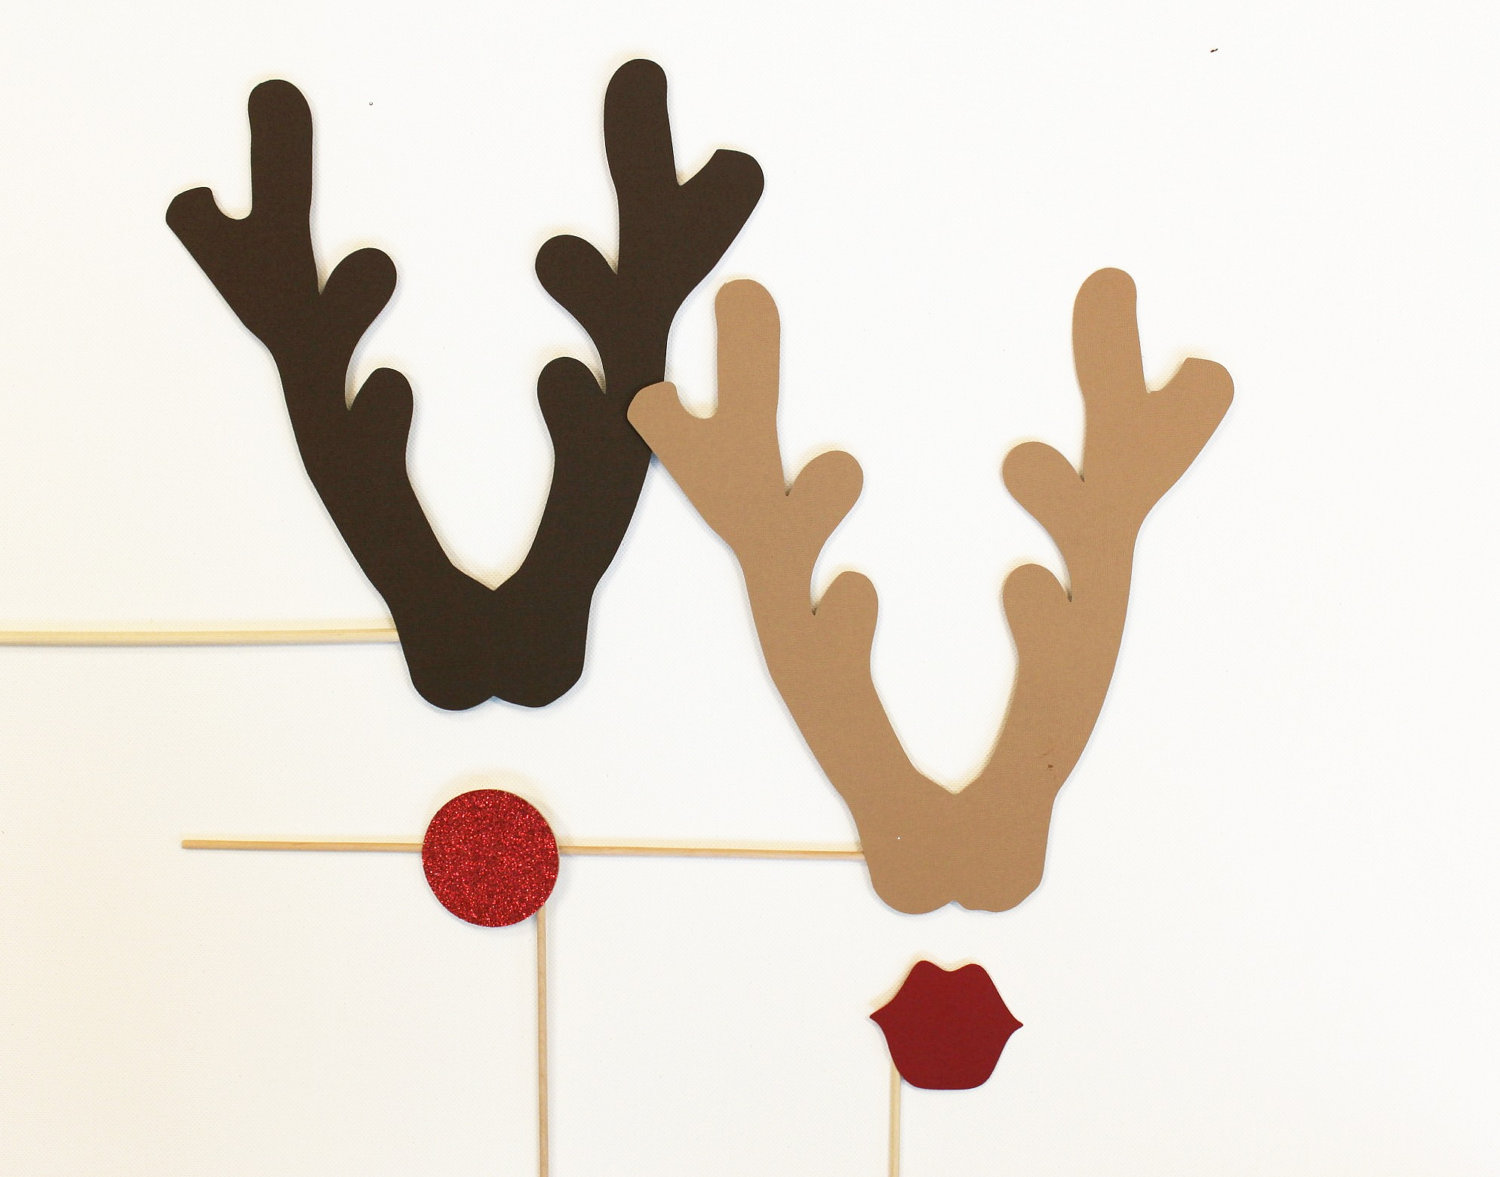 Reindeer Antlers Cut Out Trace antlers onto brown craft